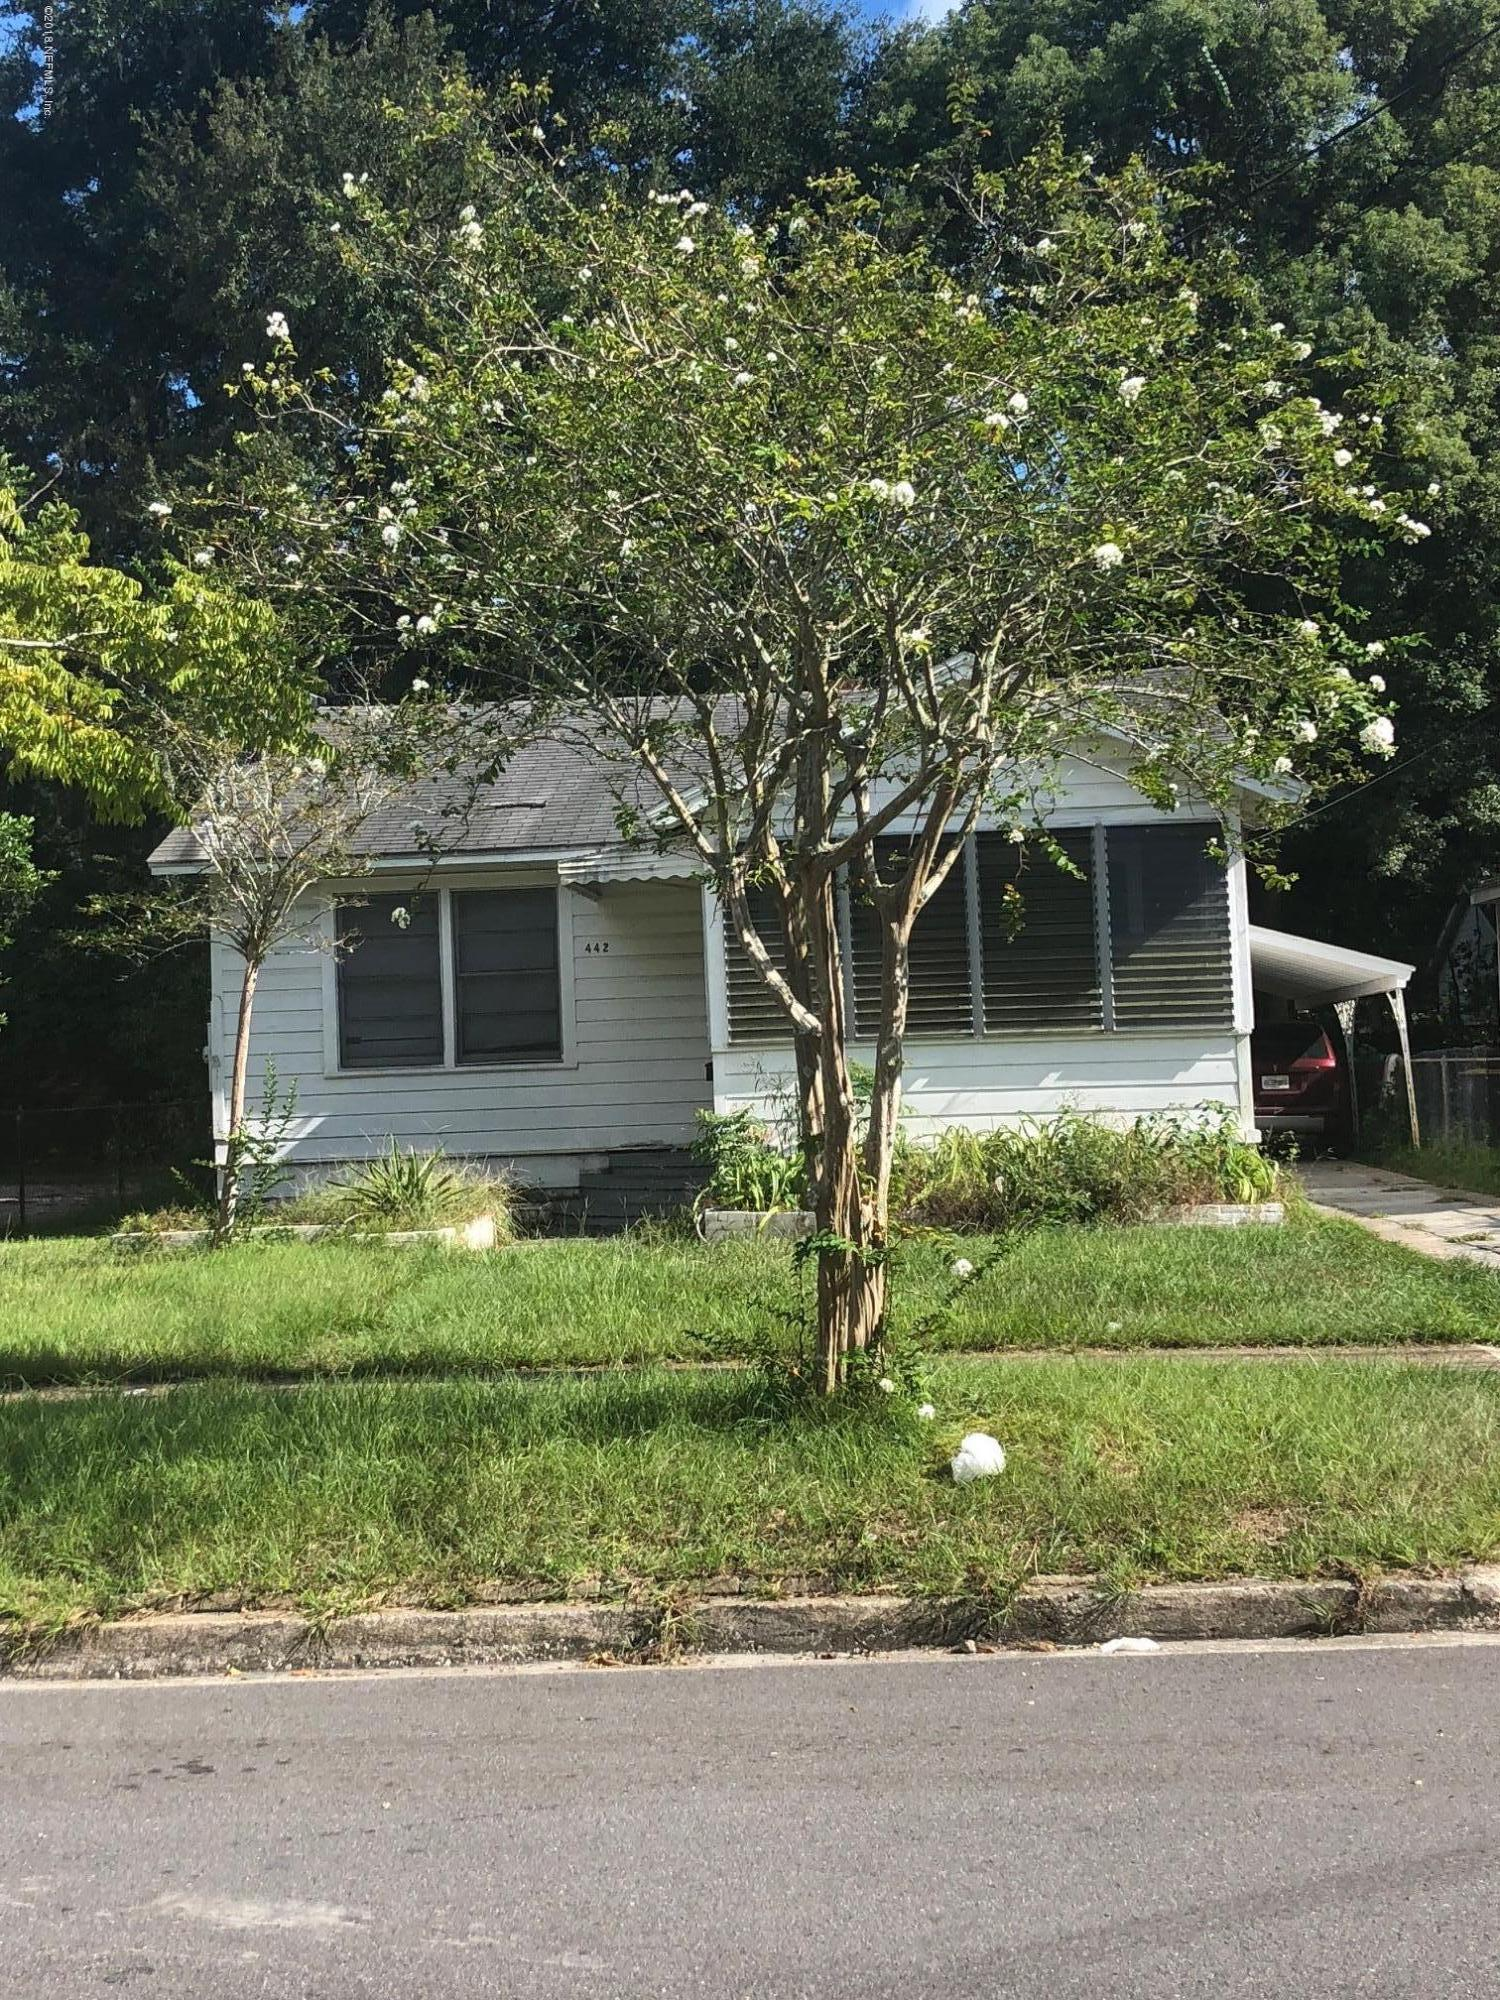 442 61ST, JACKSONVILLE, FLORIDA 32208, 3 Bedrooms Bedrooms, ,1 BathroomBathrooms,Single family,For sale,61ST,959597